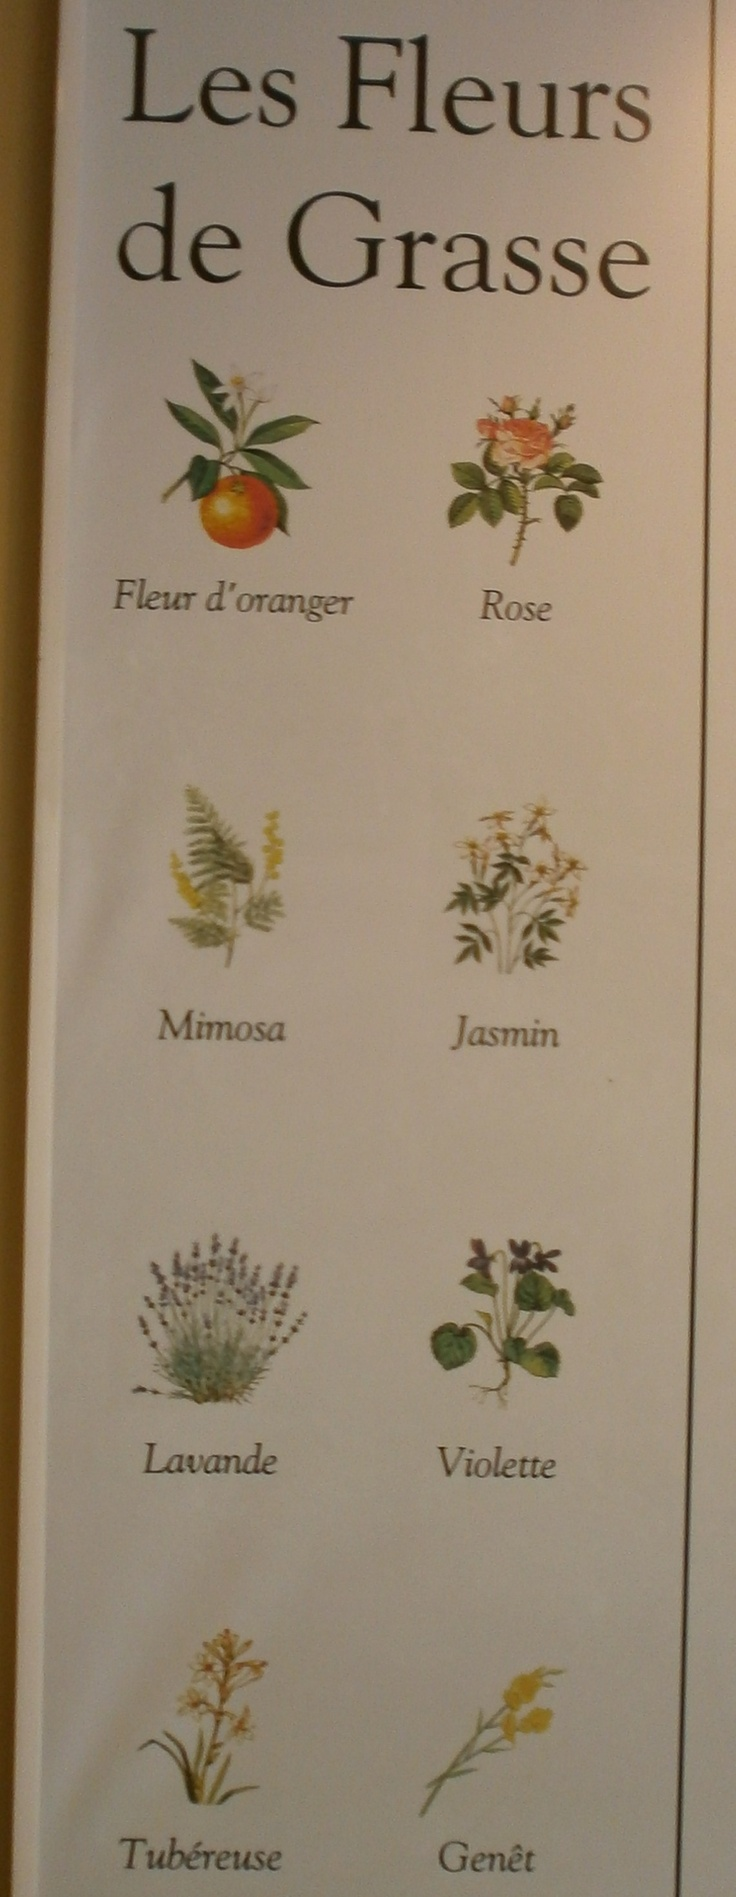 In a display in the Fragonard laboratory eight flowers are listed as 'The flowers of Grasse', i.e. Orange blossom, Rose, Mimosa, Jasmine, Lavender, Violet, Tuberose and Broom.